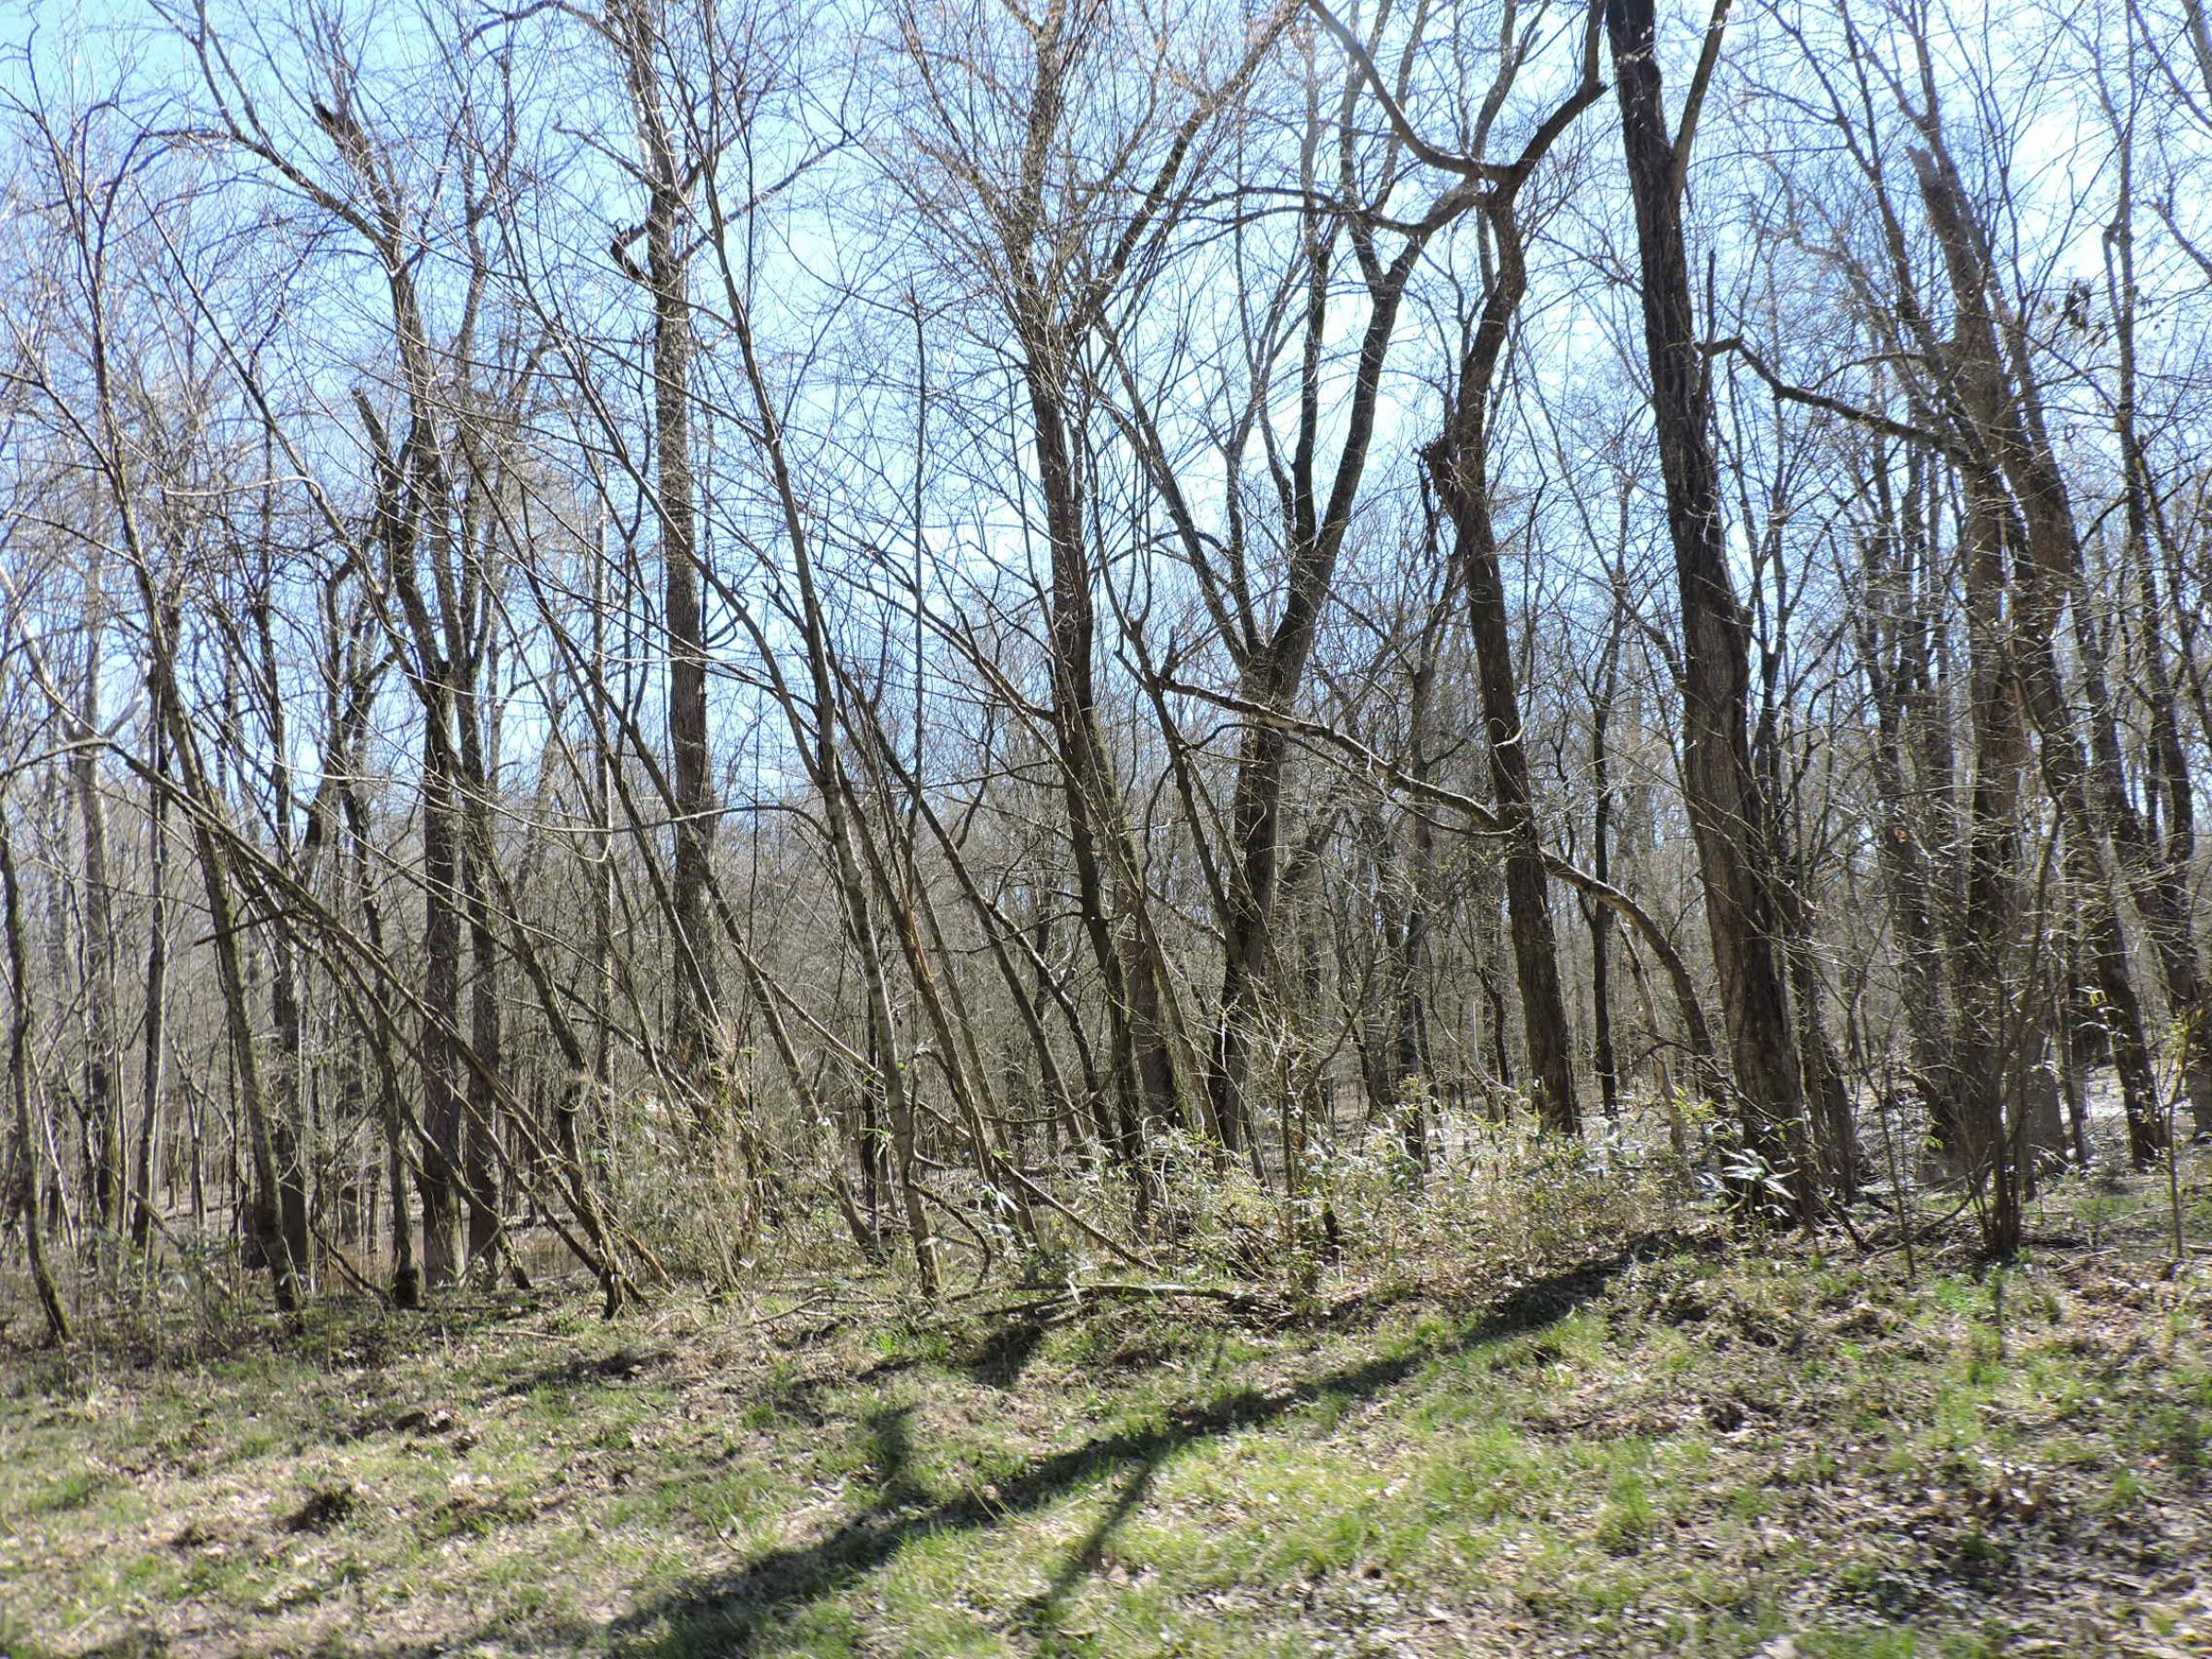 lawrence-county-arkansas-180-acres-listing-number-15014-18-2020-05-28-210451.JPG